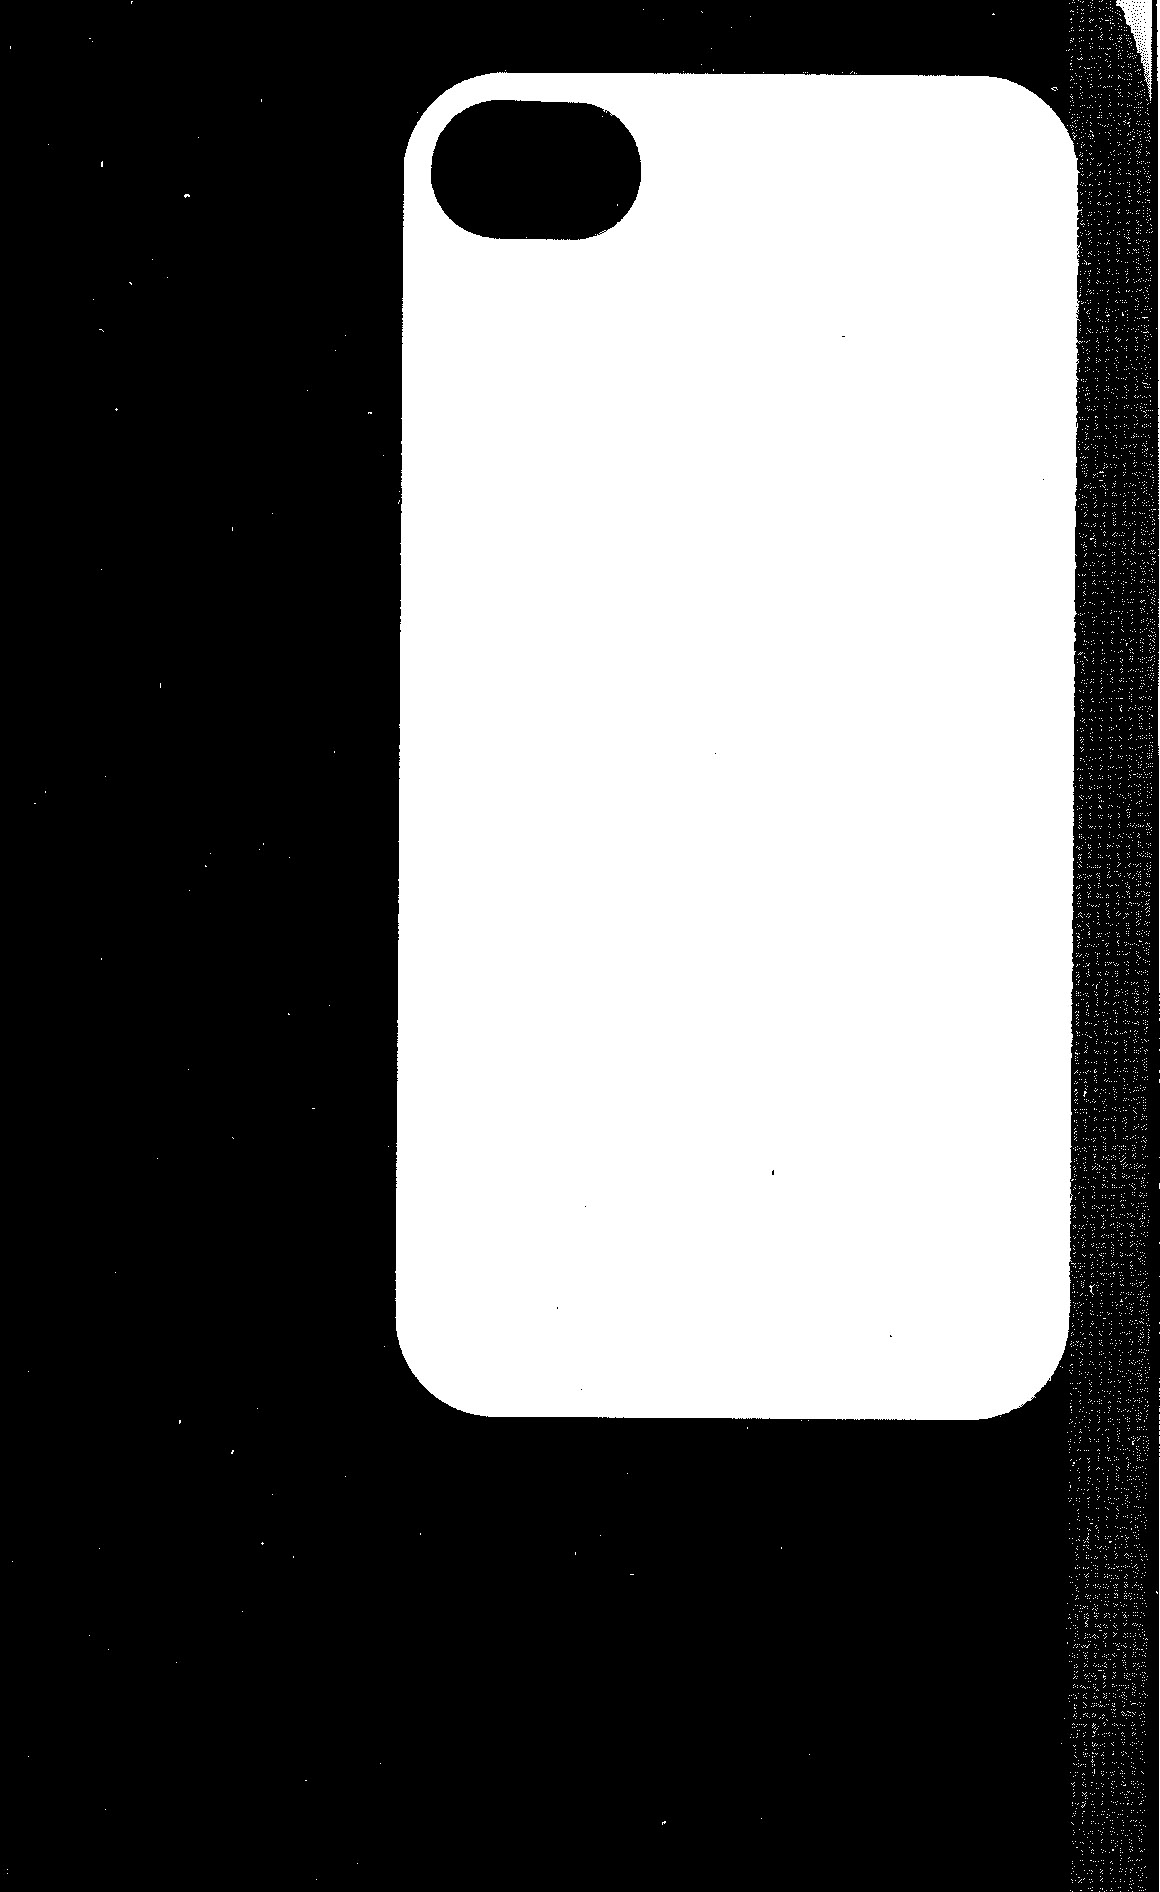 Here Is A Scan Of The IPhone Cover With